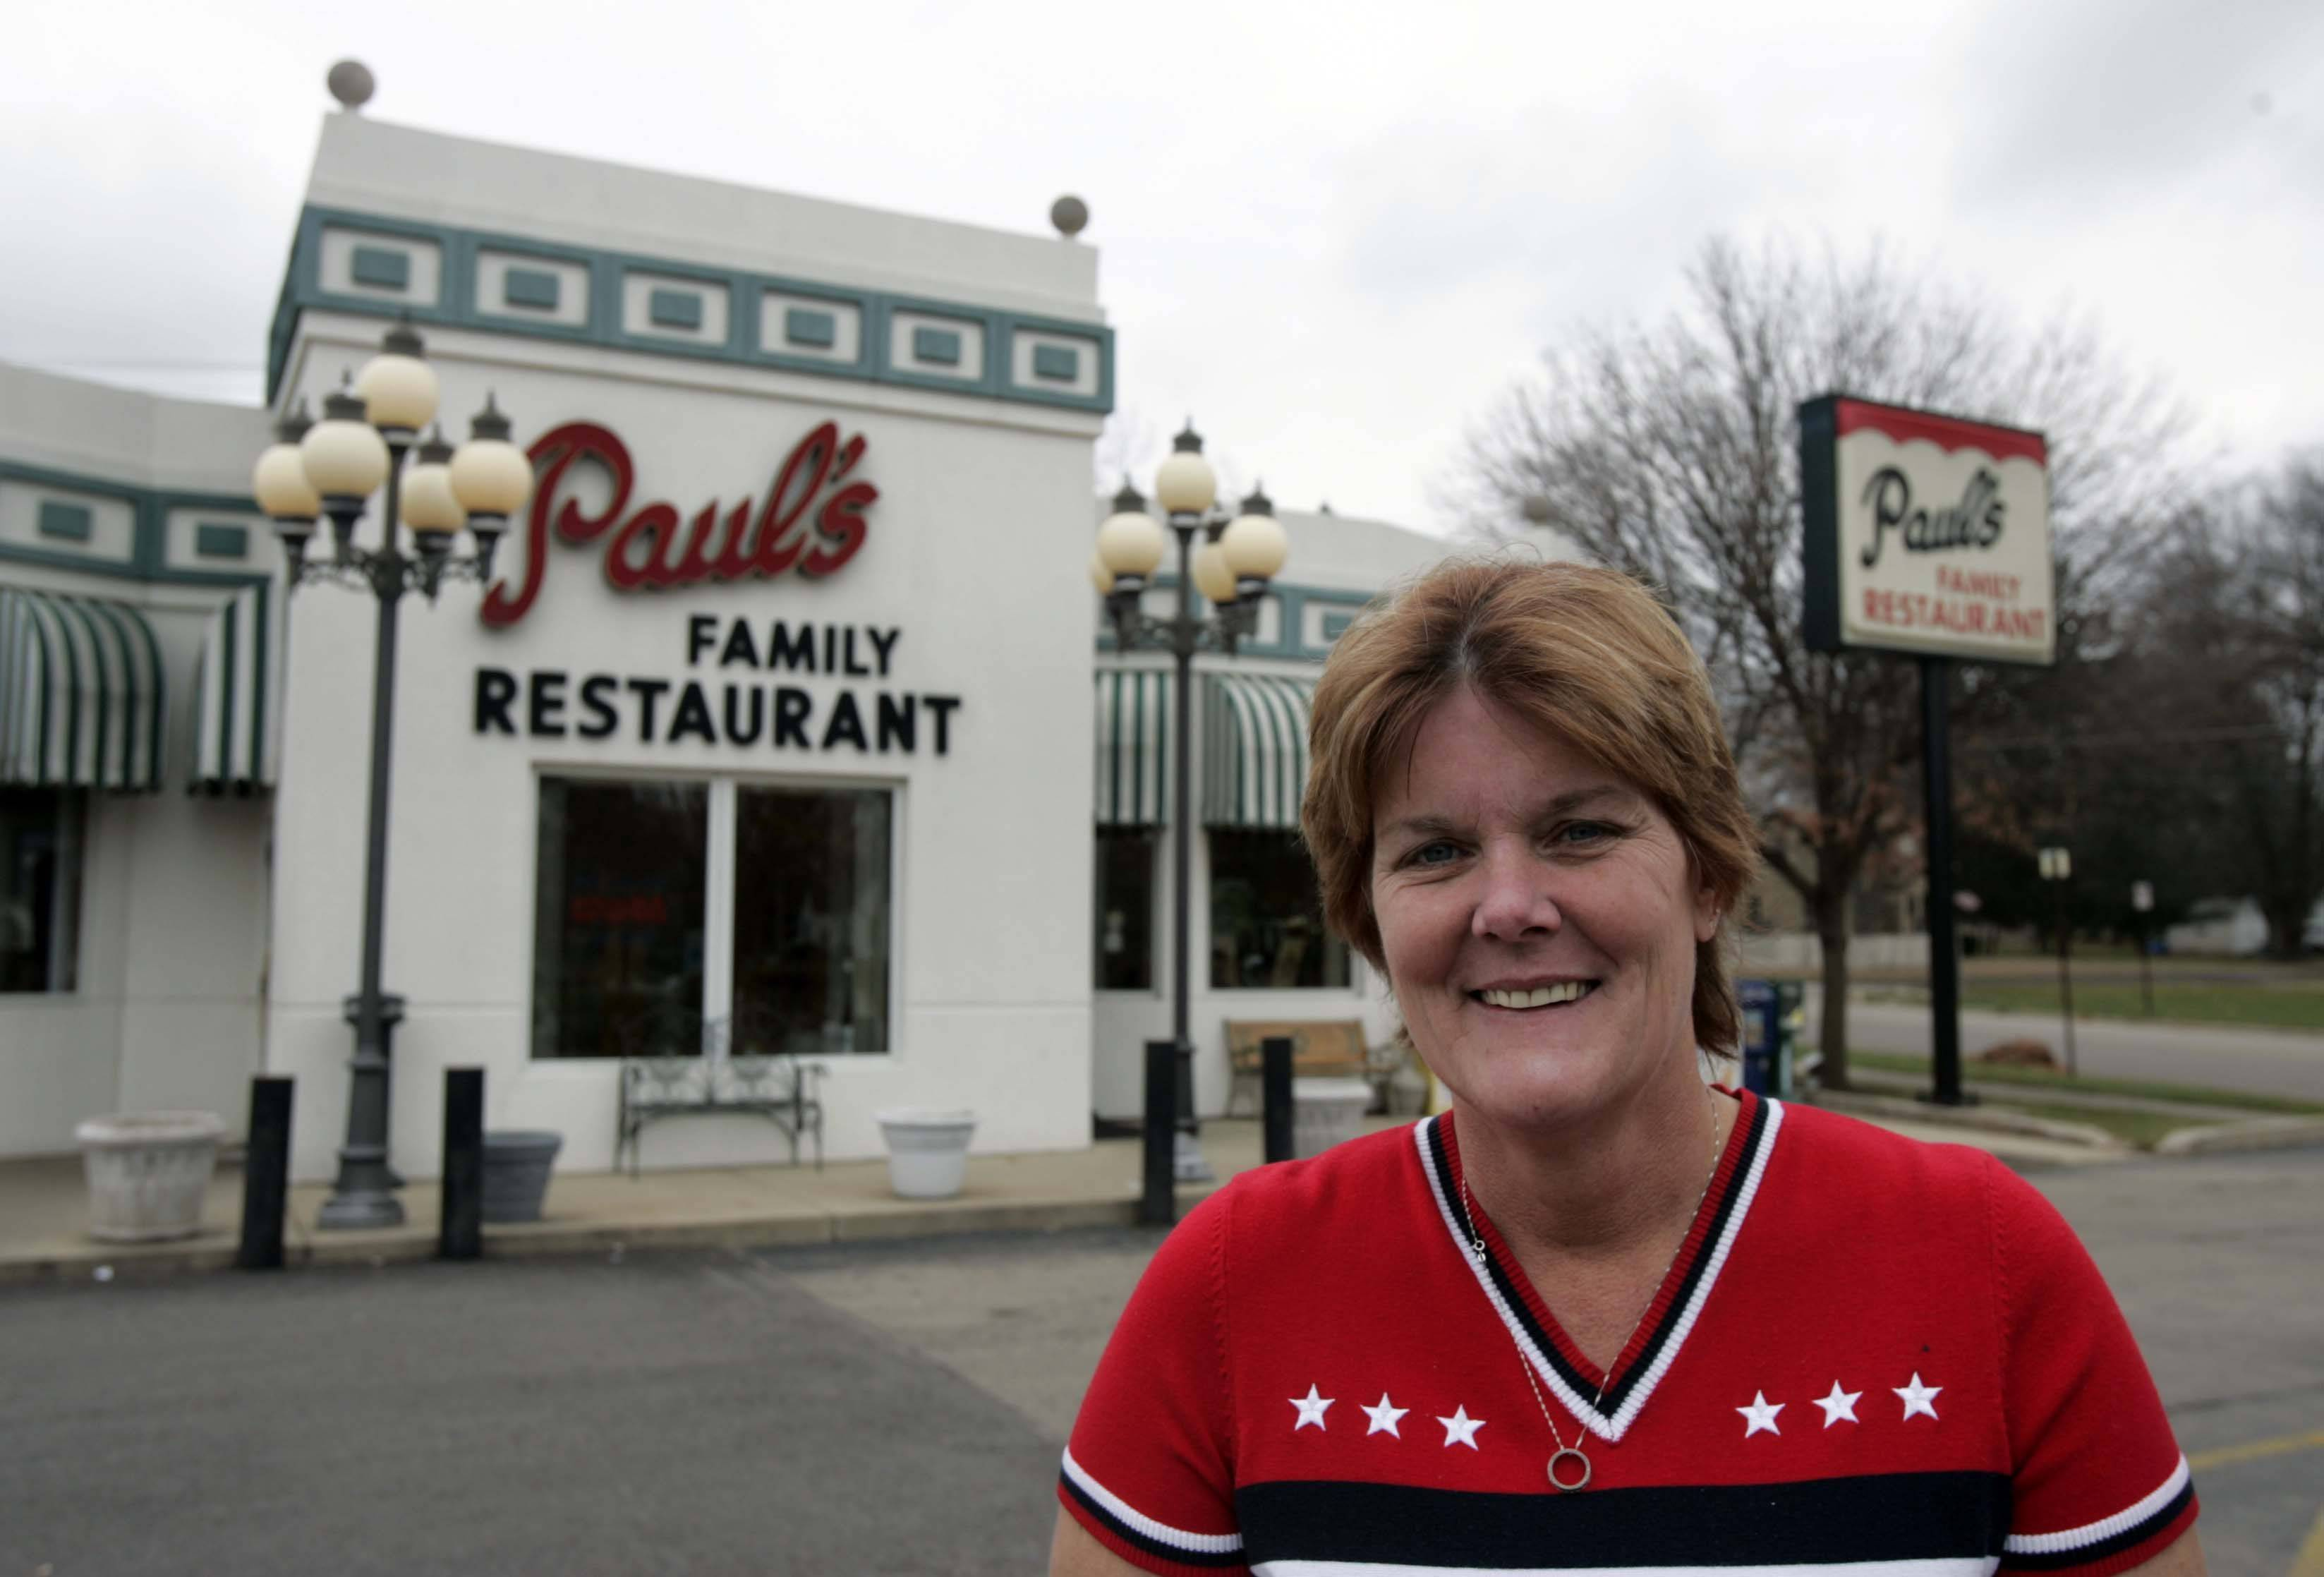 Lorrie Tucker, a waitress at Paul's Family Restaurant in Elgin, is collecting donations for the troops in Afghanistan. Her son-in-law is a serviceman. Tucker has collected and sent 47 pounds of candy to the troops and will be sending more than 300 toothbrushes as well.